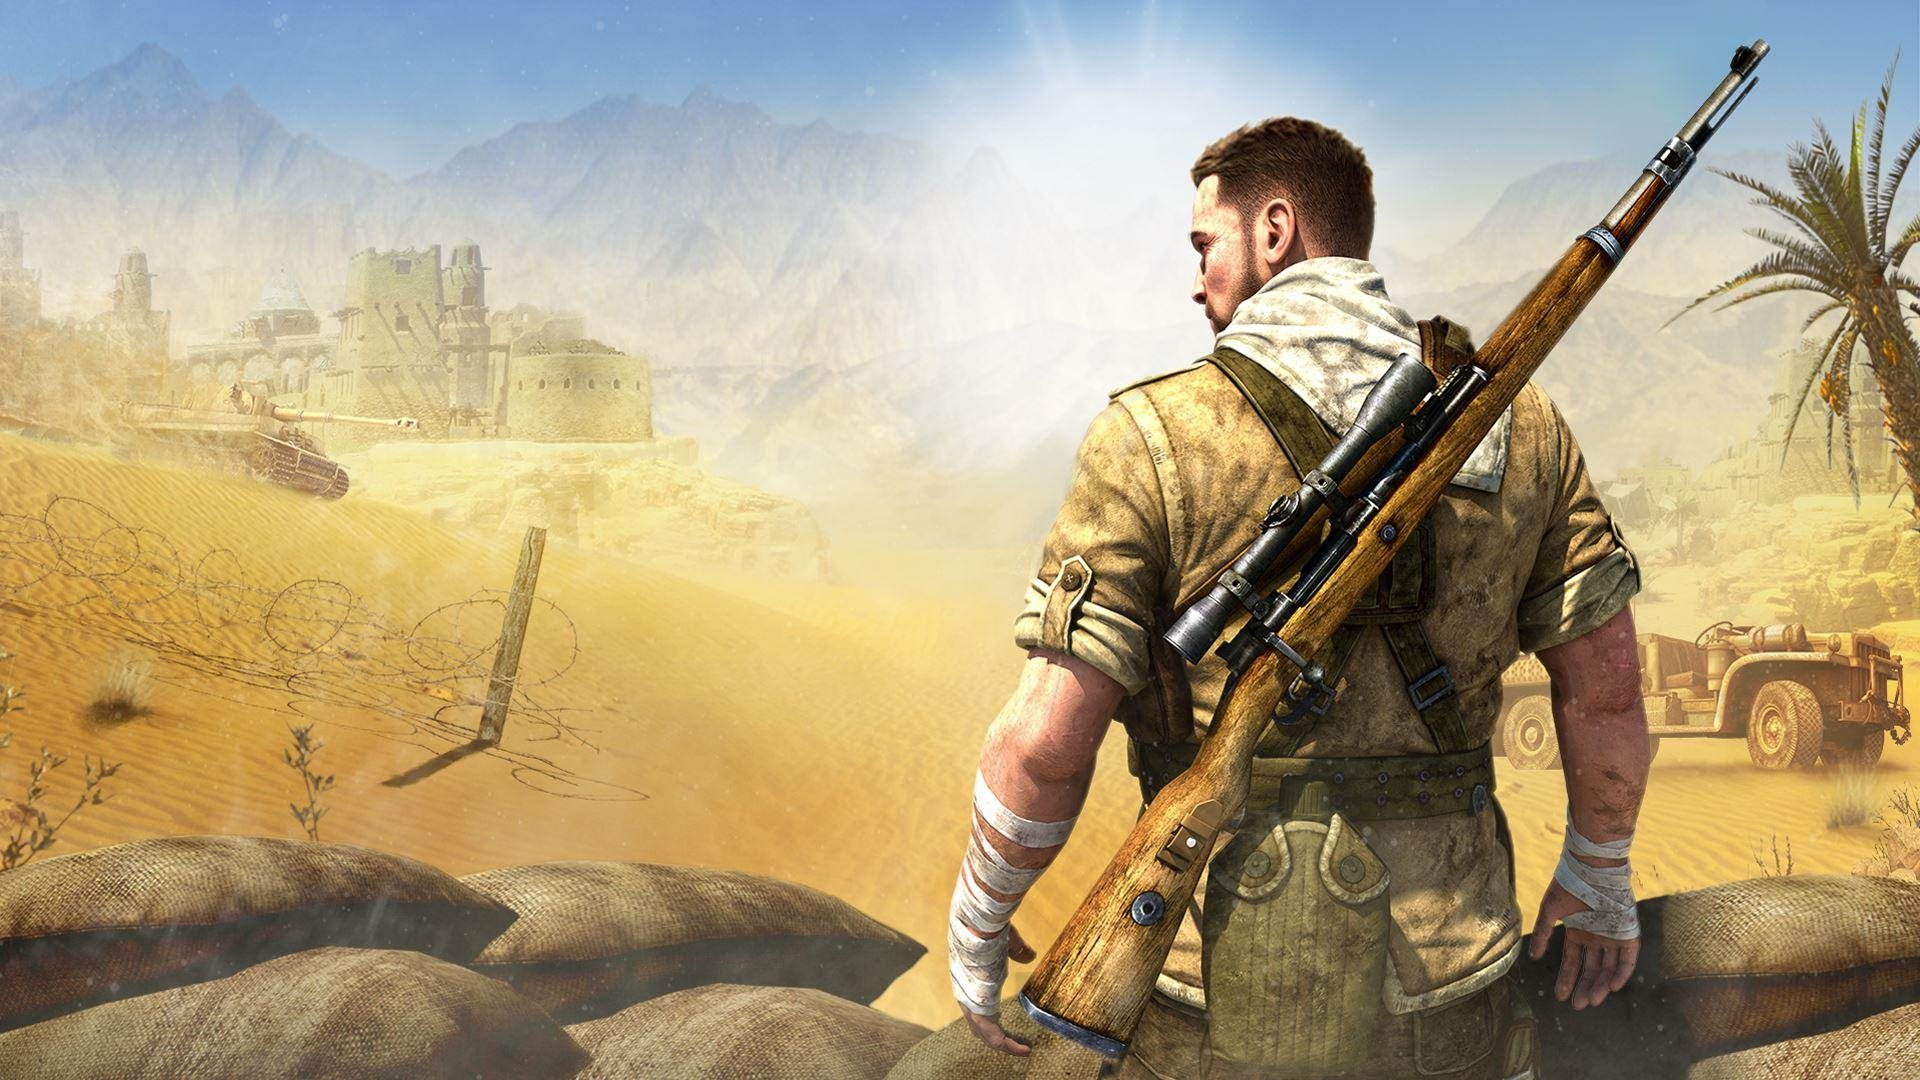 8 Sniper Elite 3 HD Wallpapers Background Images 1920x1080